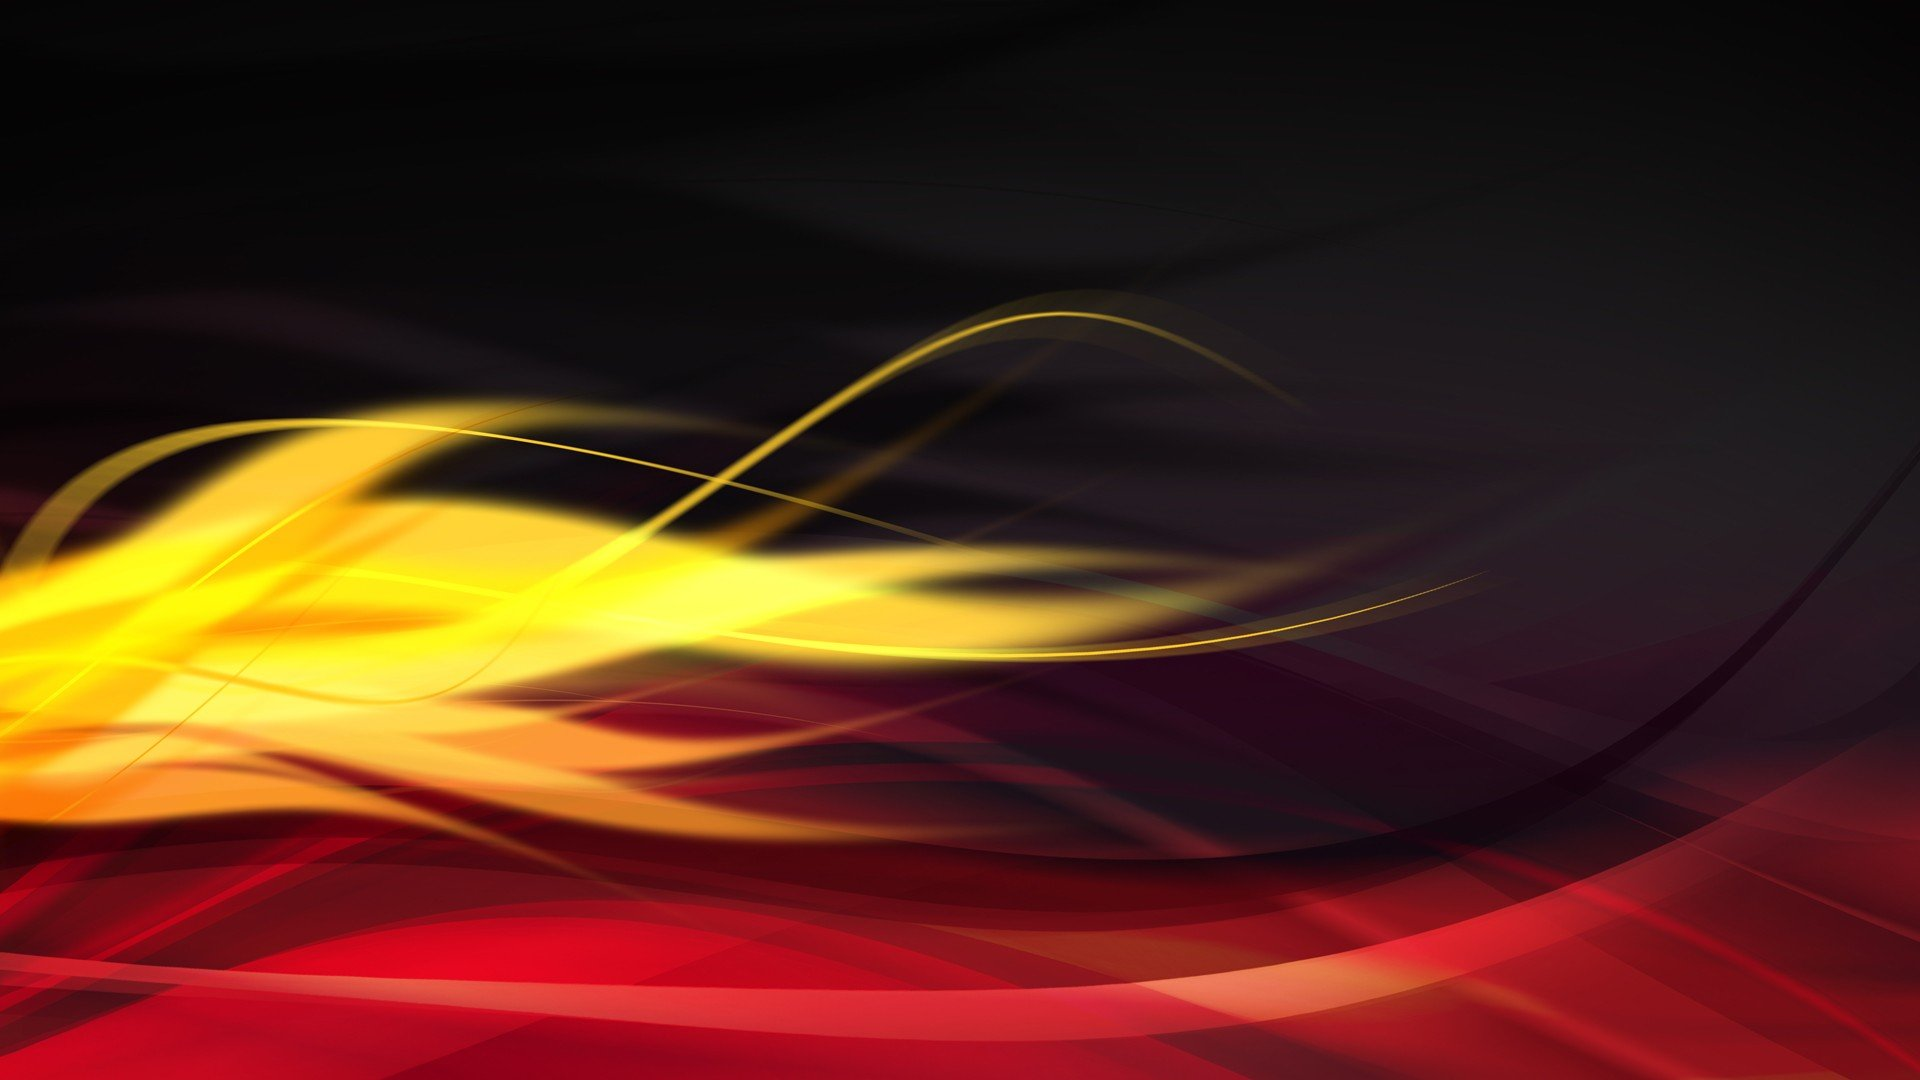 Red And Black Abstract Black Digital Art Red Flame Black Yellow Red Art 1441651 Hd Wallpaper Backgrounds Download